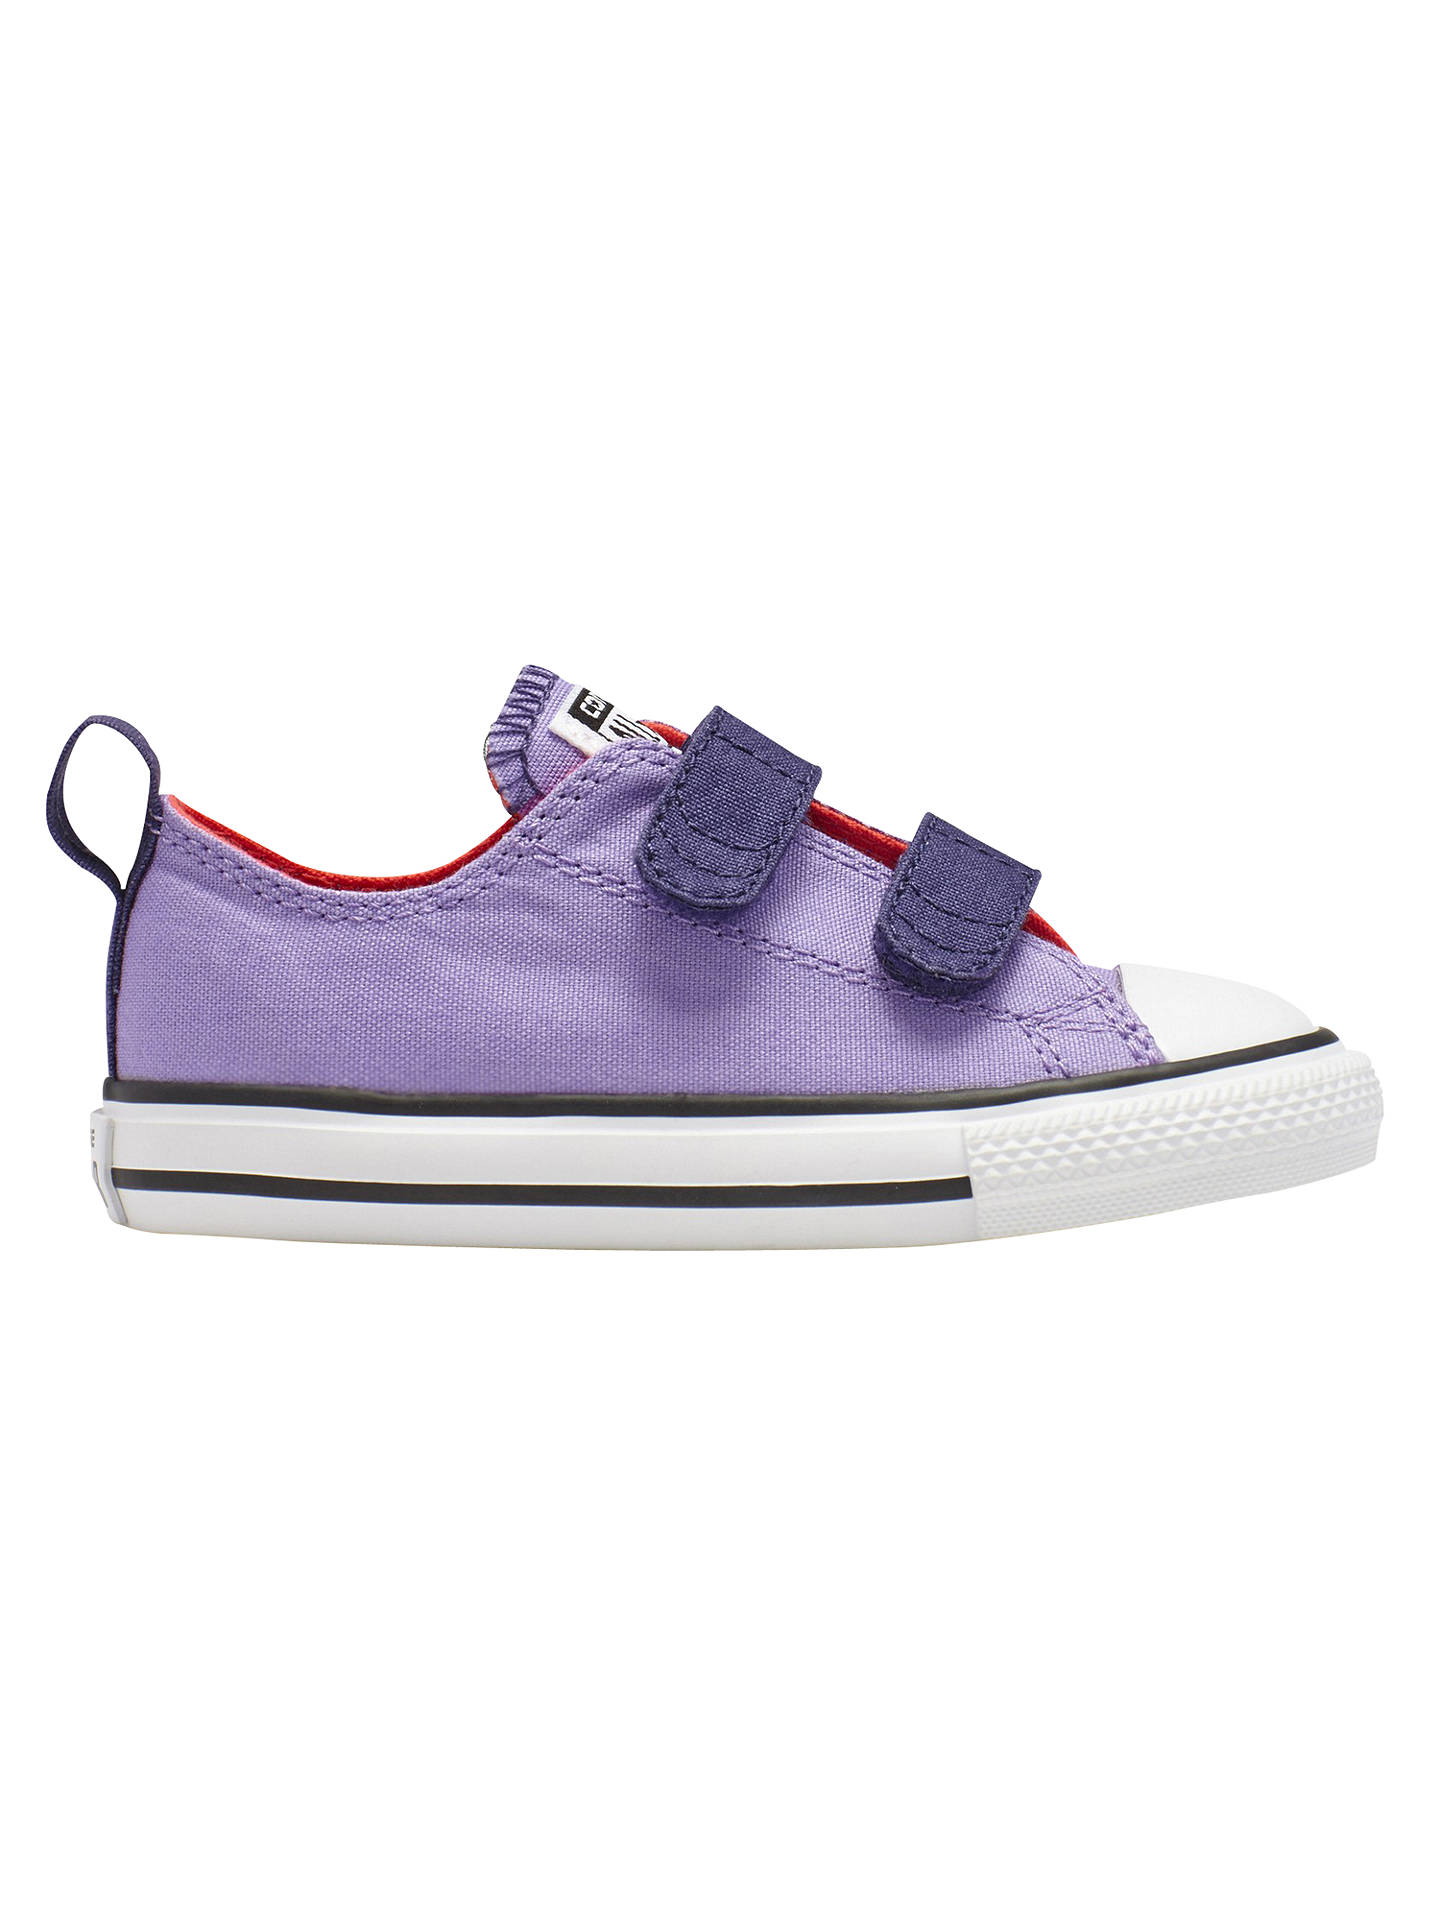 9fb4192d8e73 Converse Children s Chuck Taylor All Star Double Rip-Tape Shoes ...